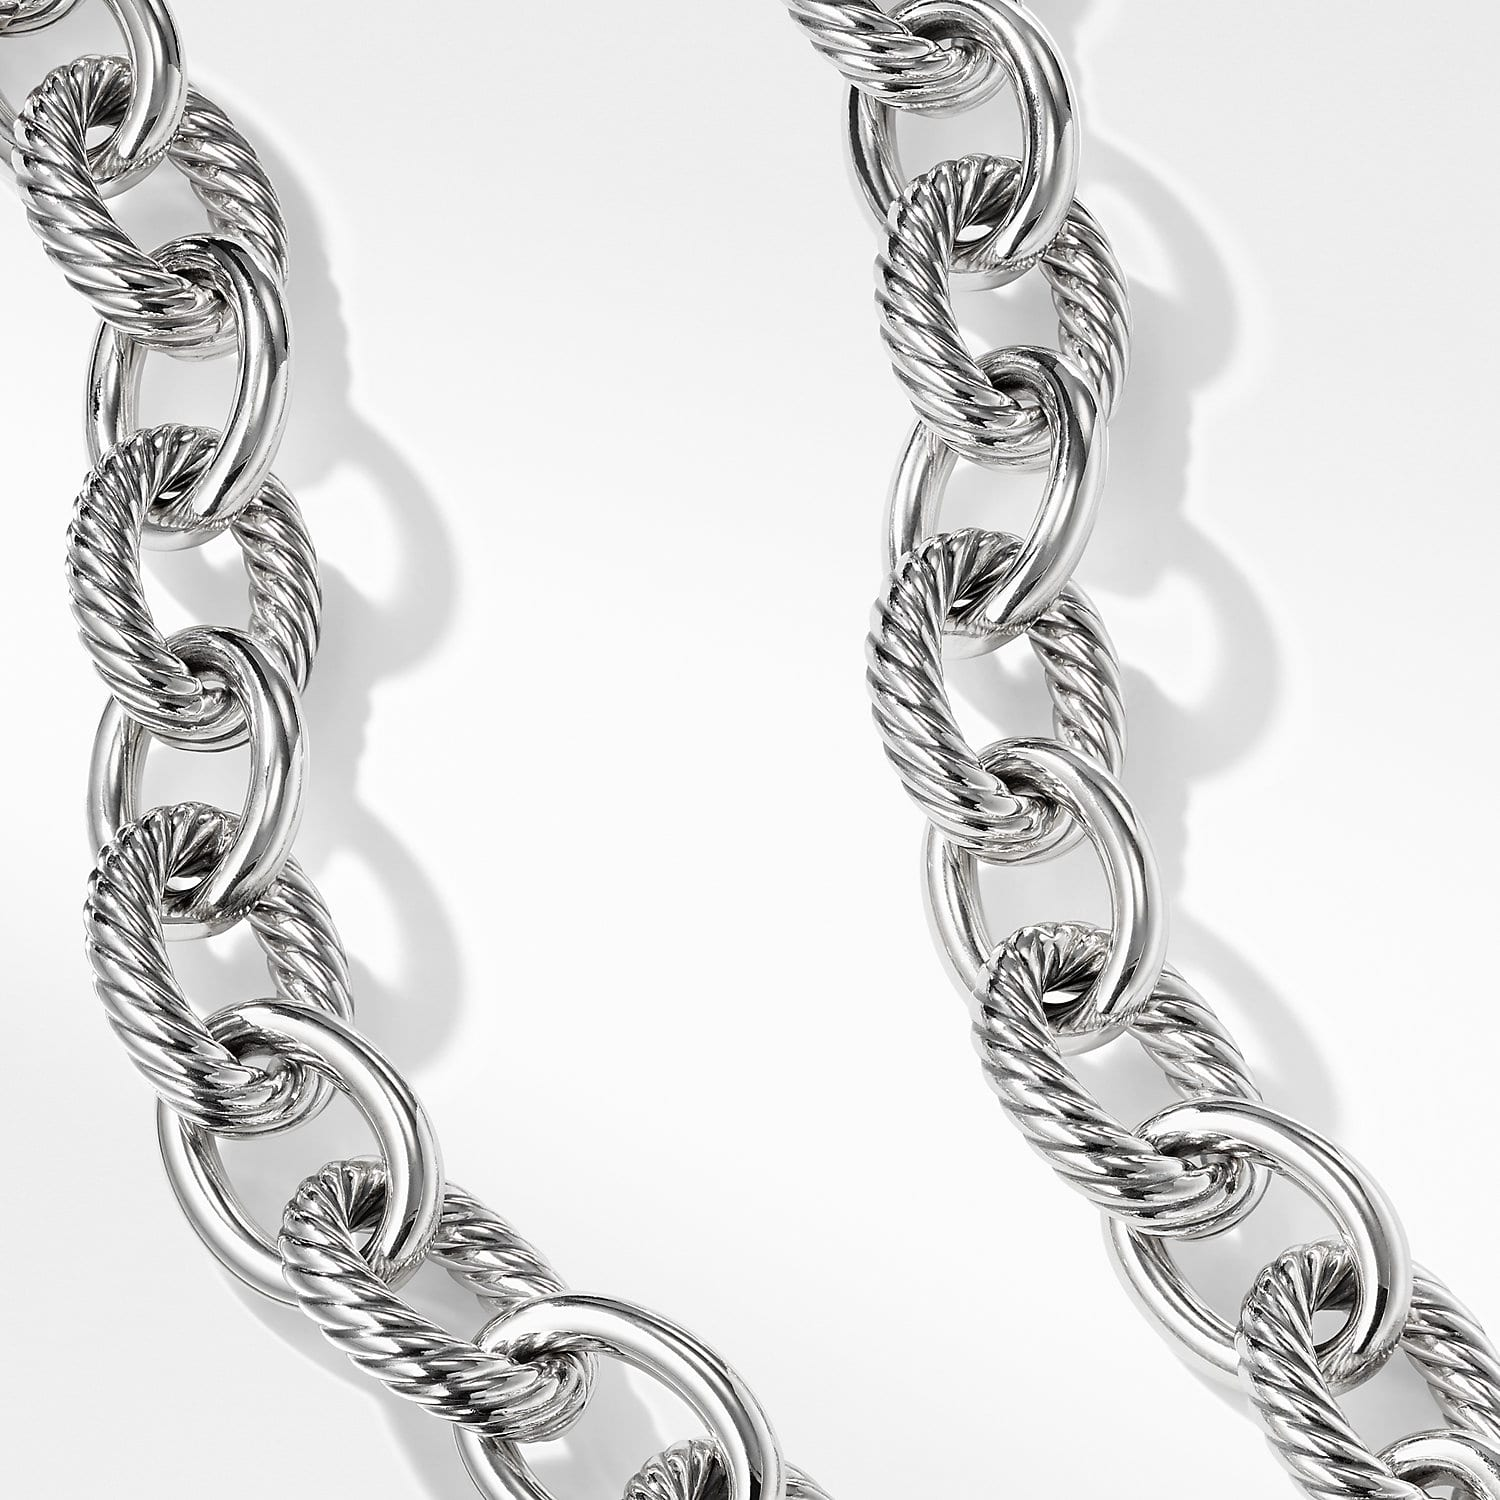 Chain-1M-Rhodium Plated-3*4mm Ellipse link chain-Layerd necklace Jewelry findings,Necklace making supplies,Long lasting A528-260sf B